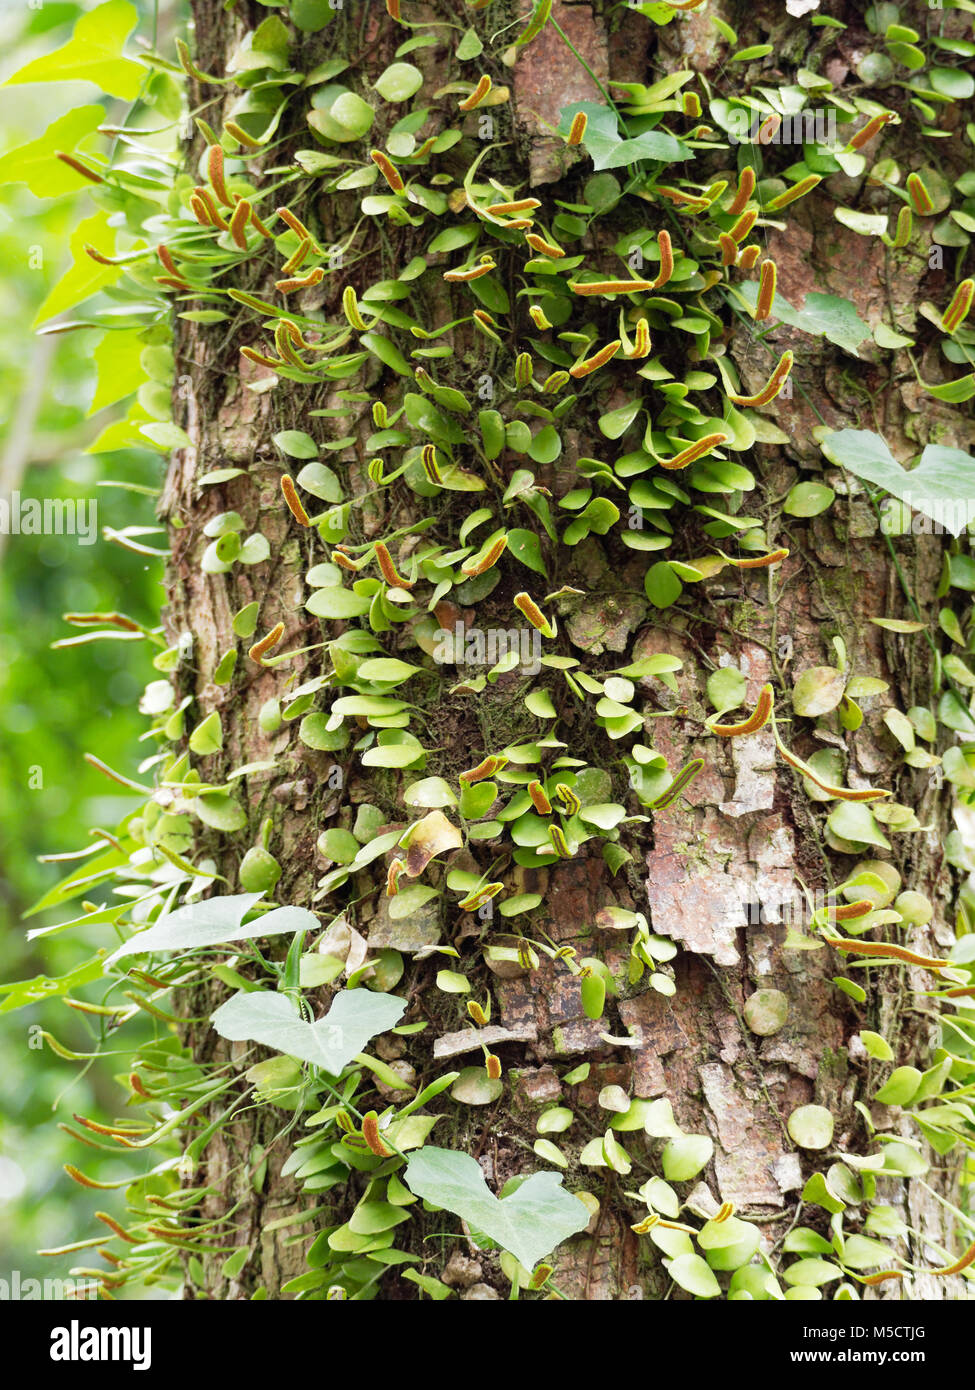 Epiphyte on tree in green tropical garden - Stock Image